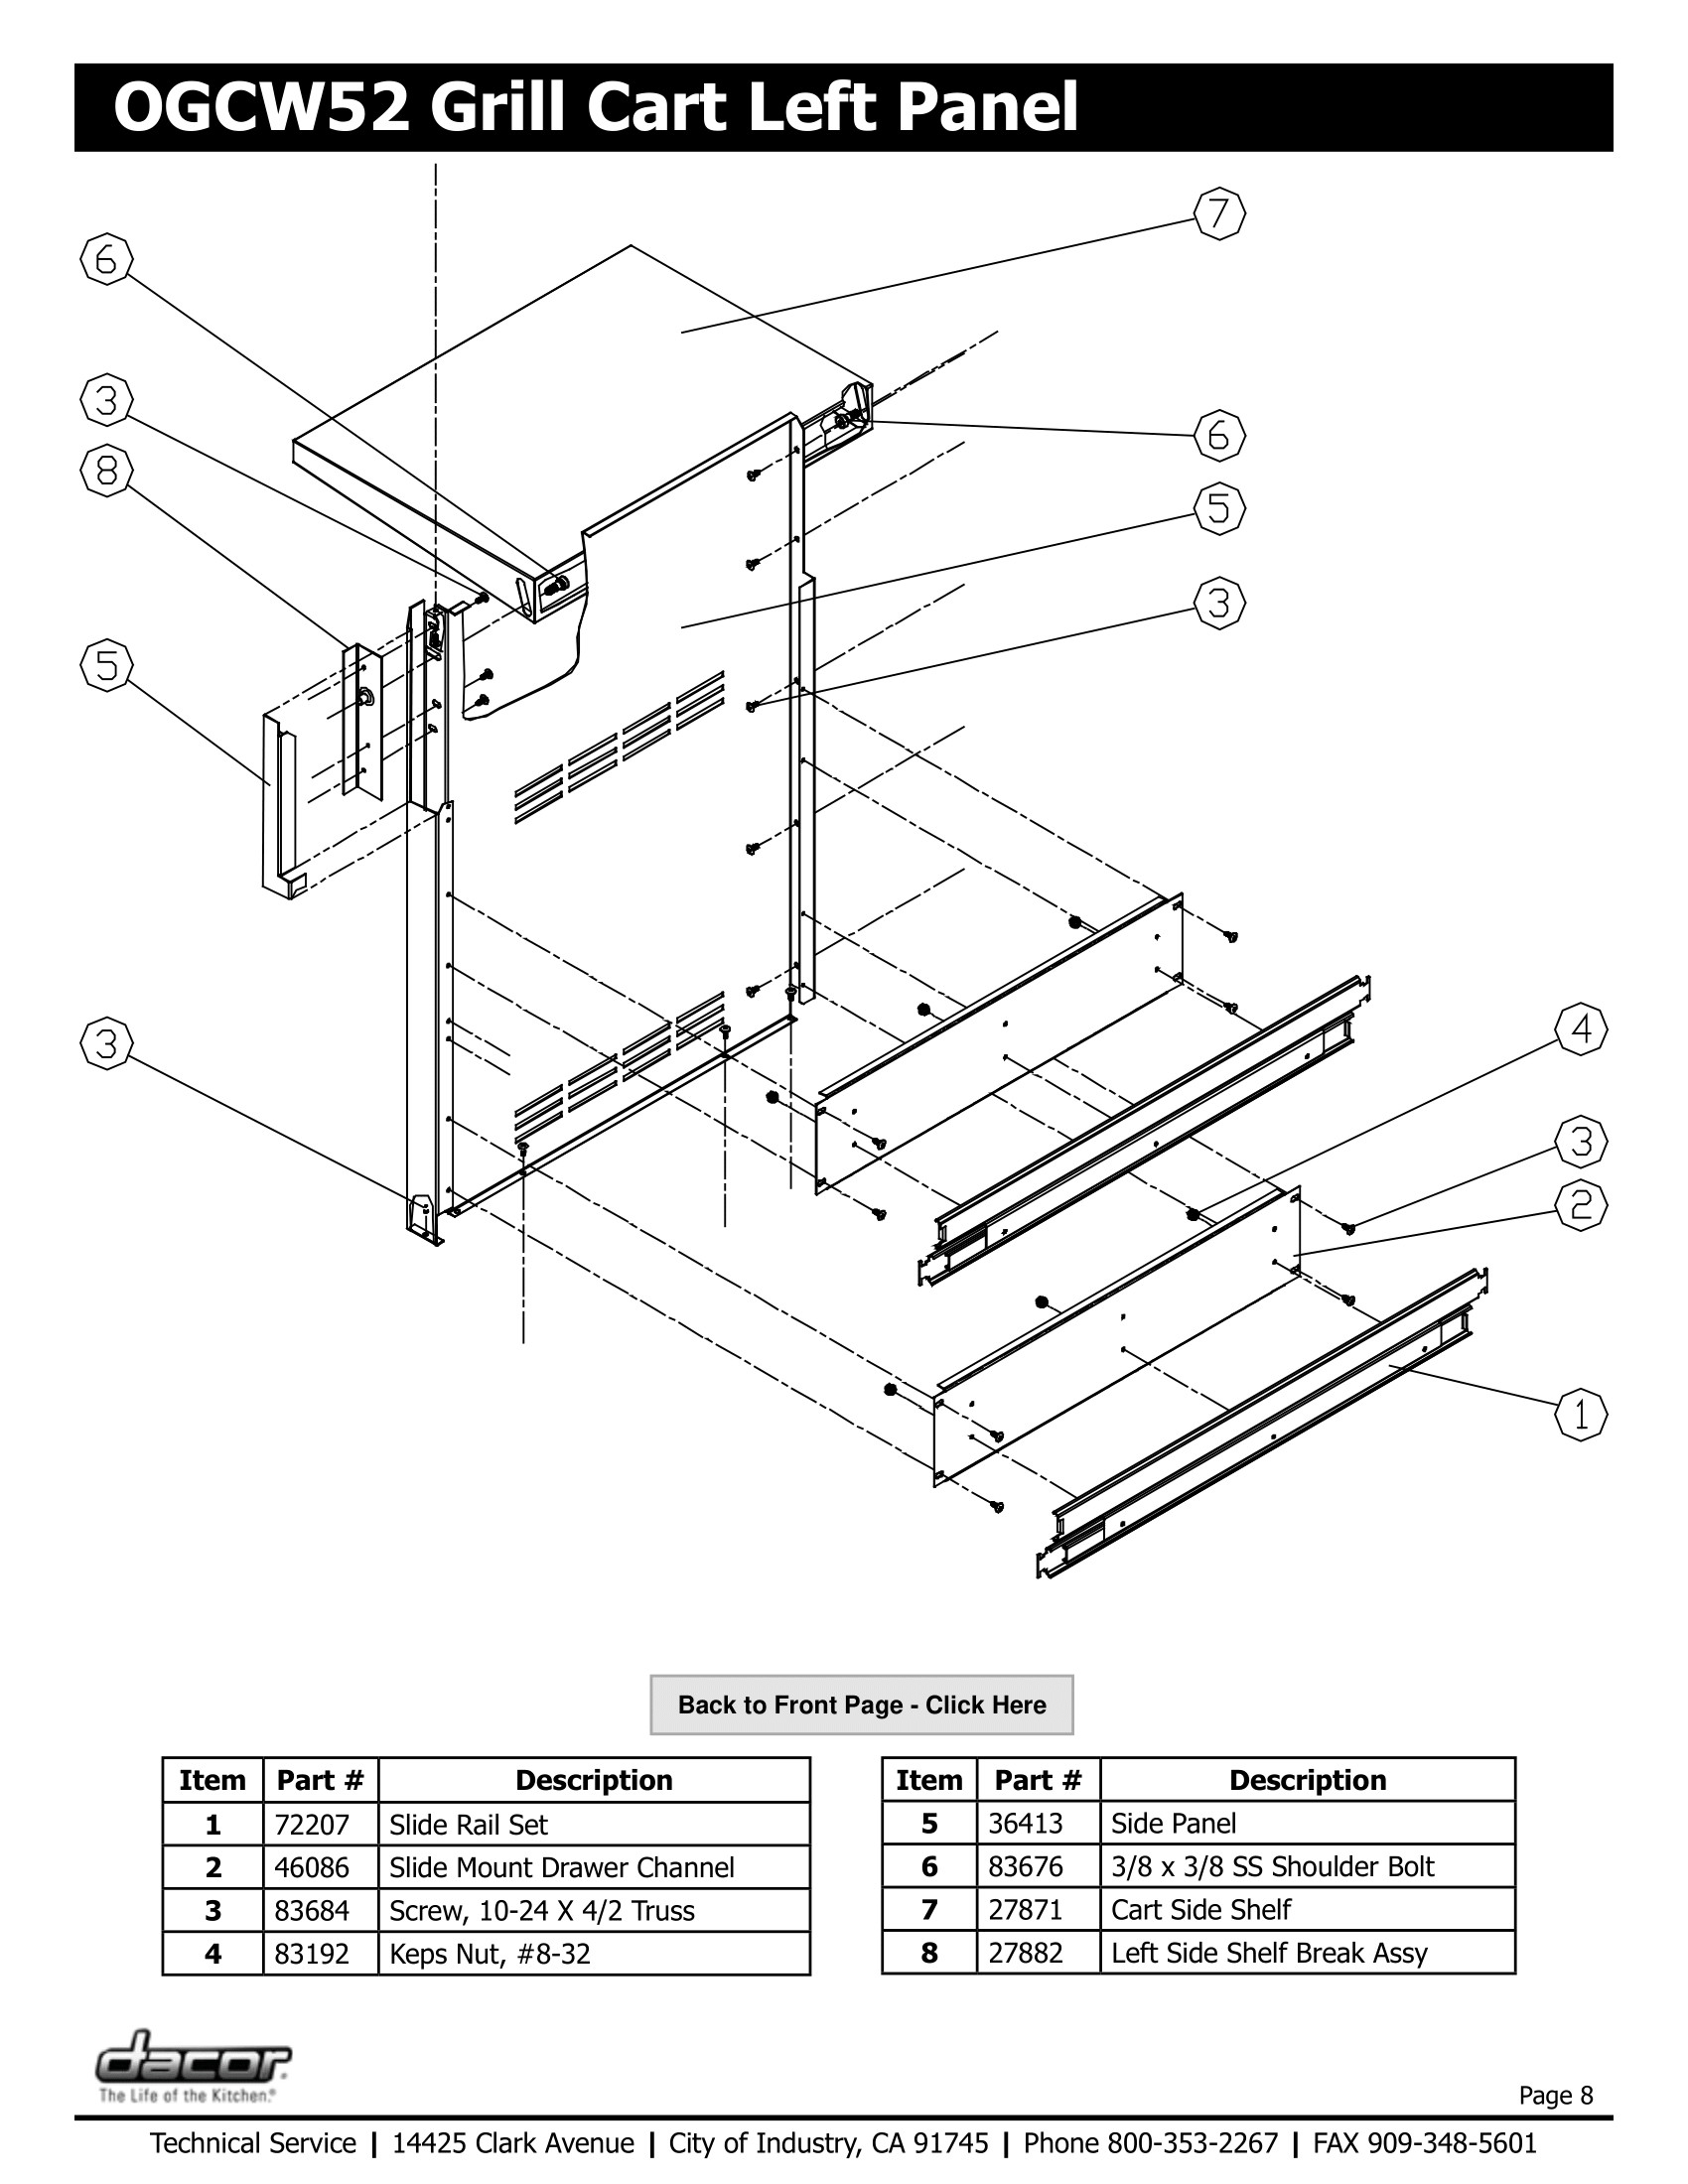 Dacor OGCW52 Left Panel Schematic